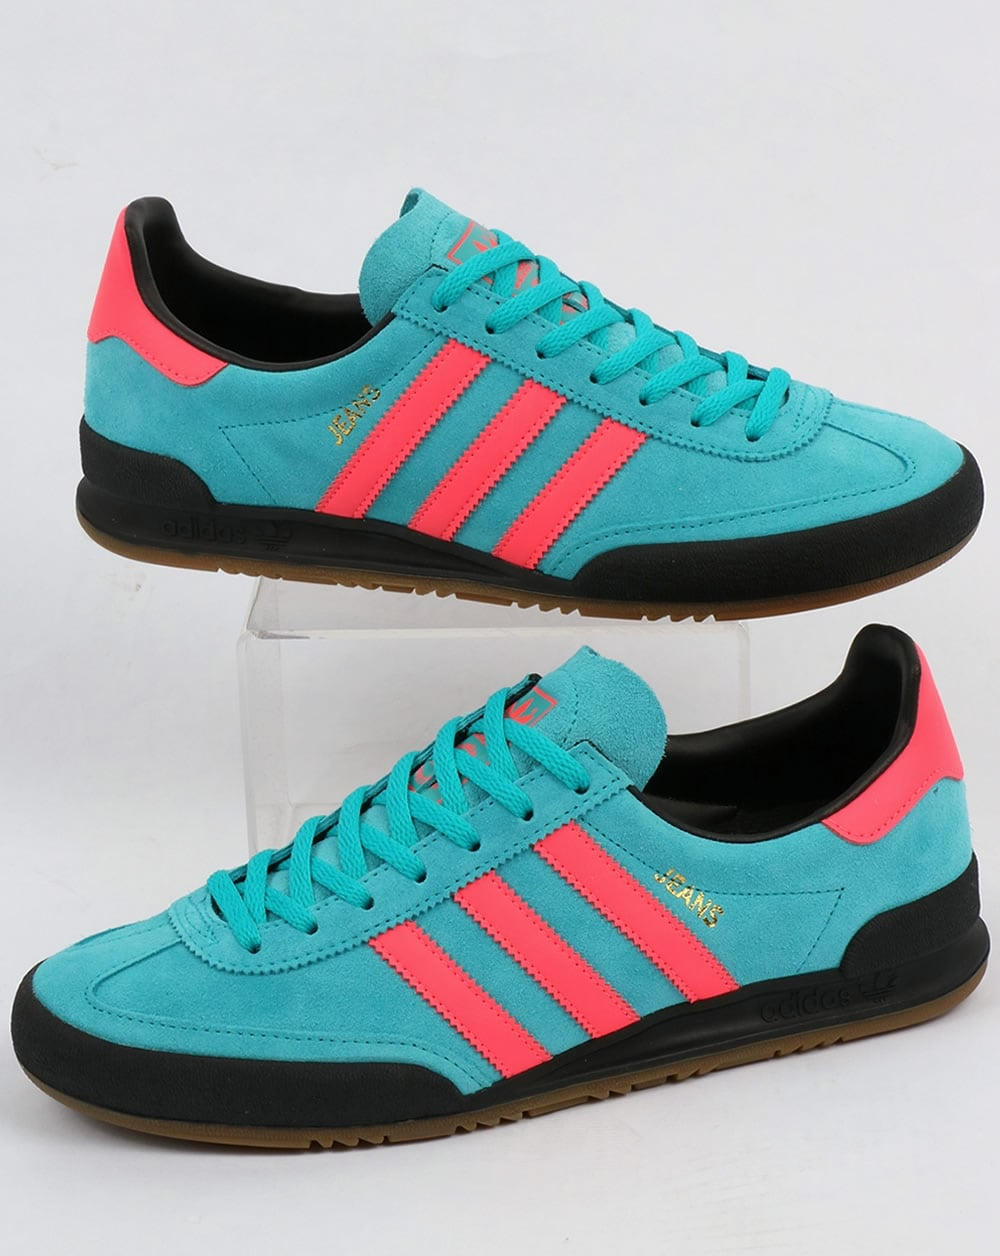 Adidas Jeans Trainers Energy Blue/Pink,shoes,